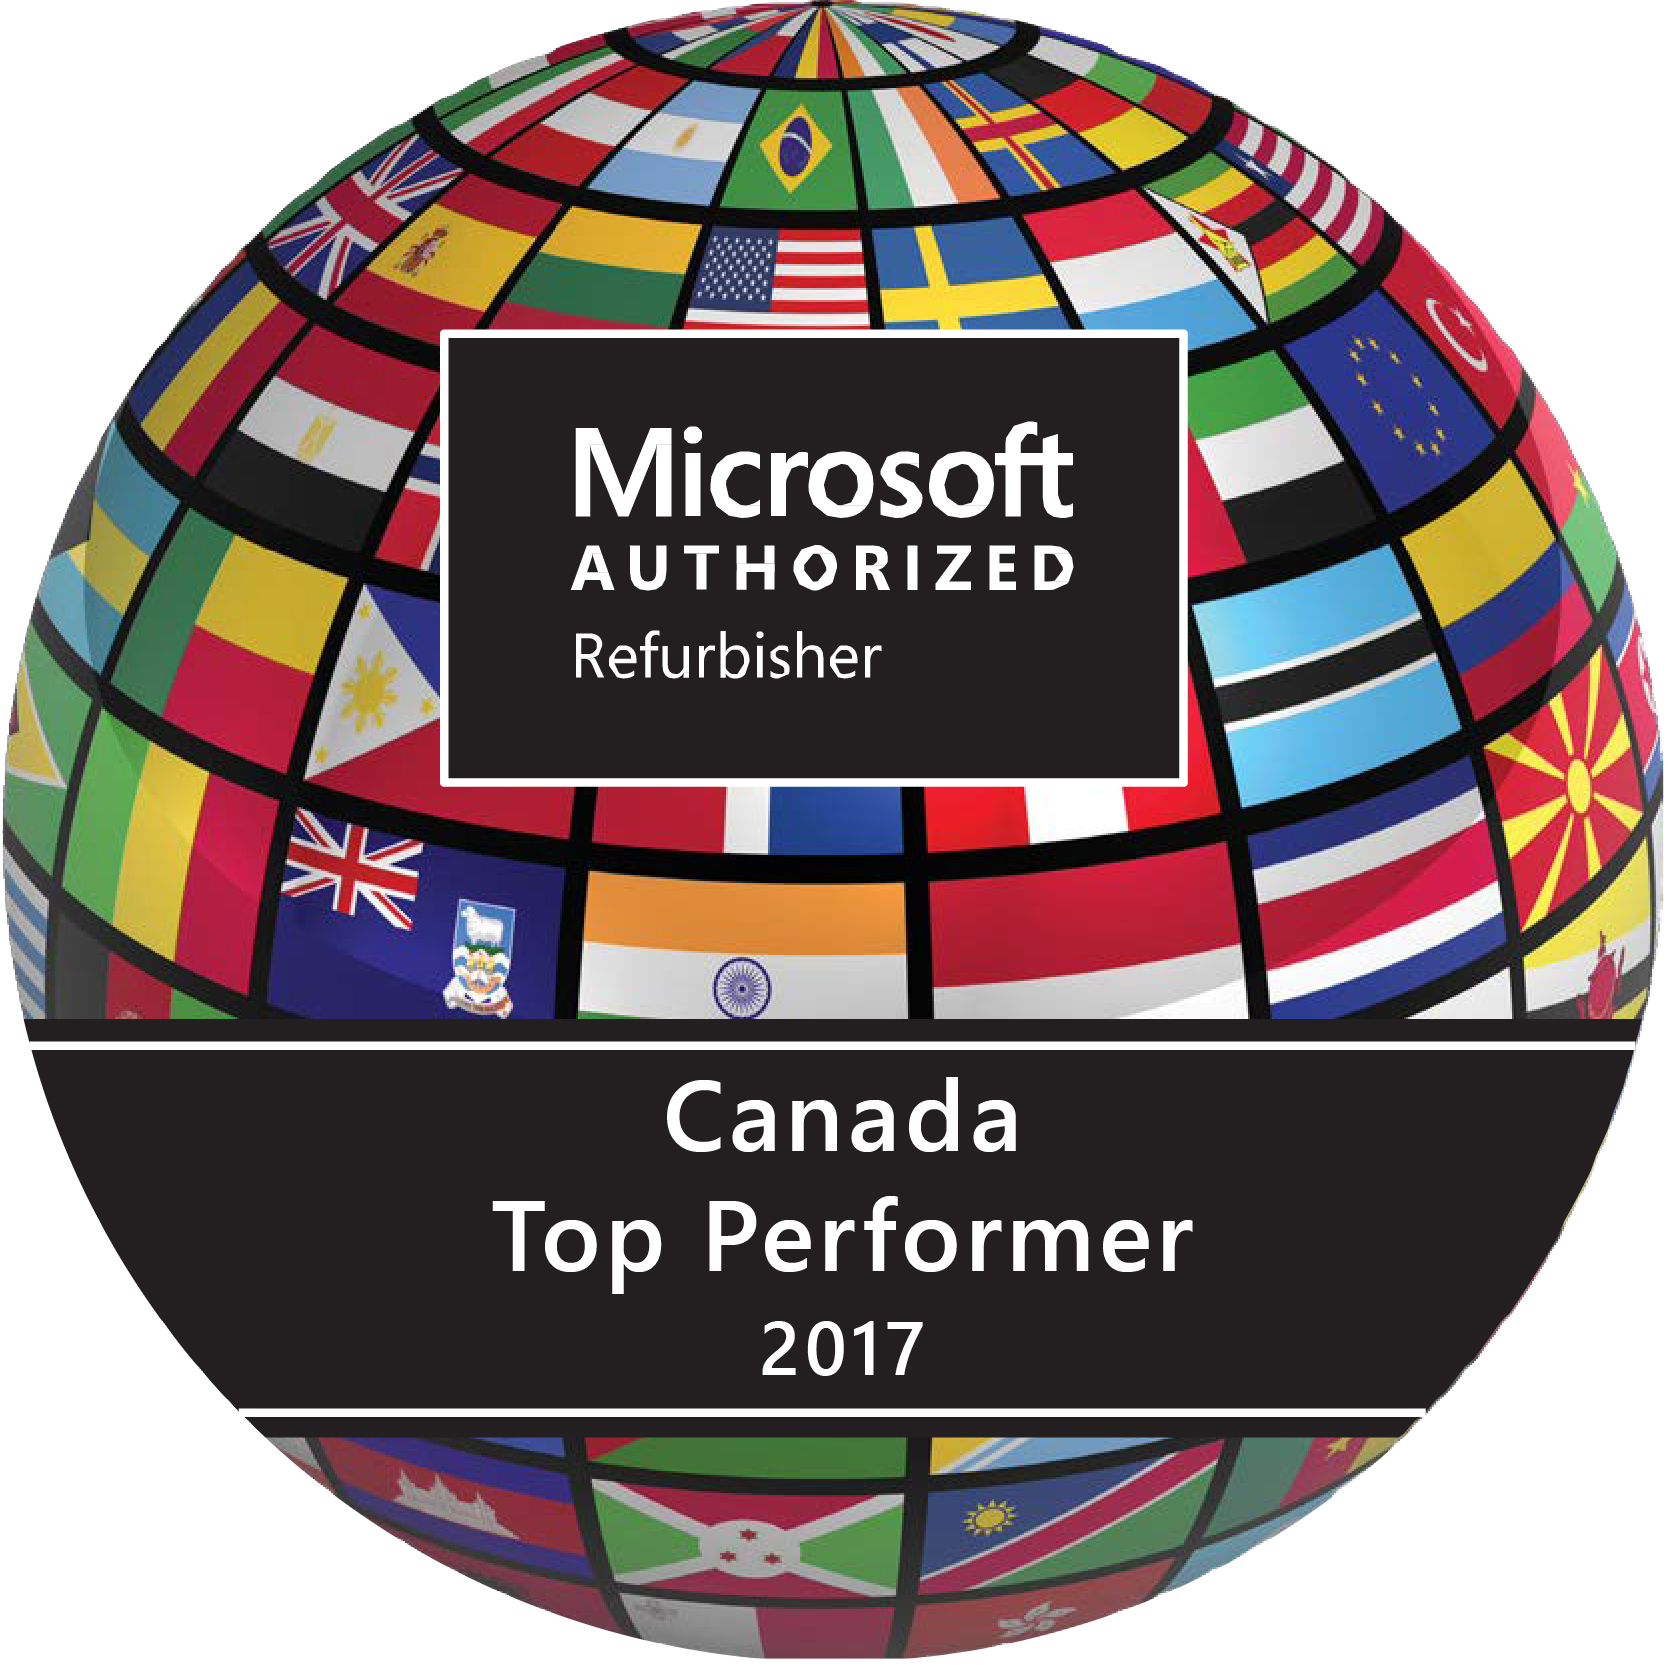 Canada Top Performer 2017